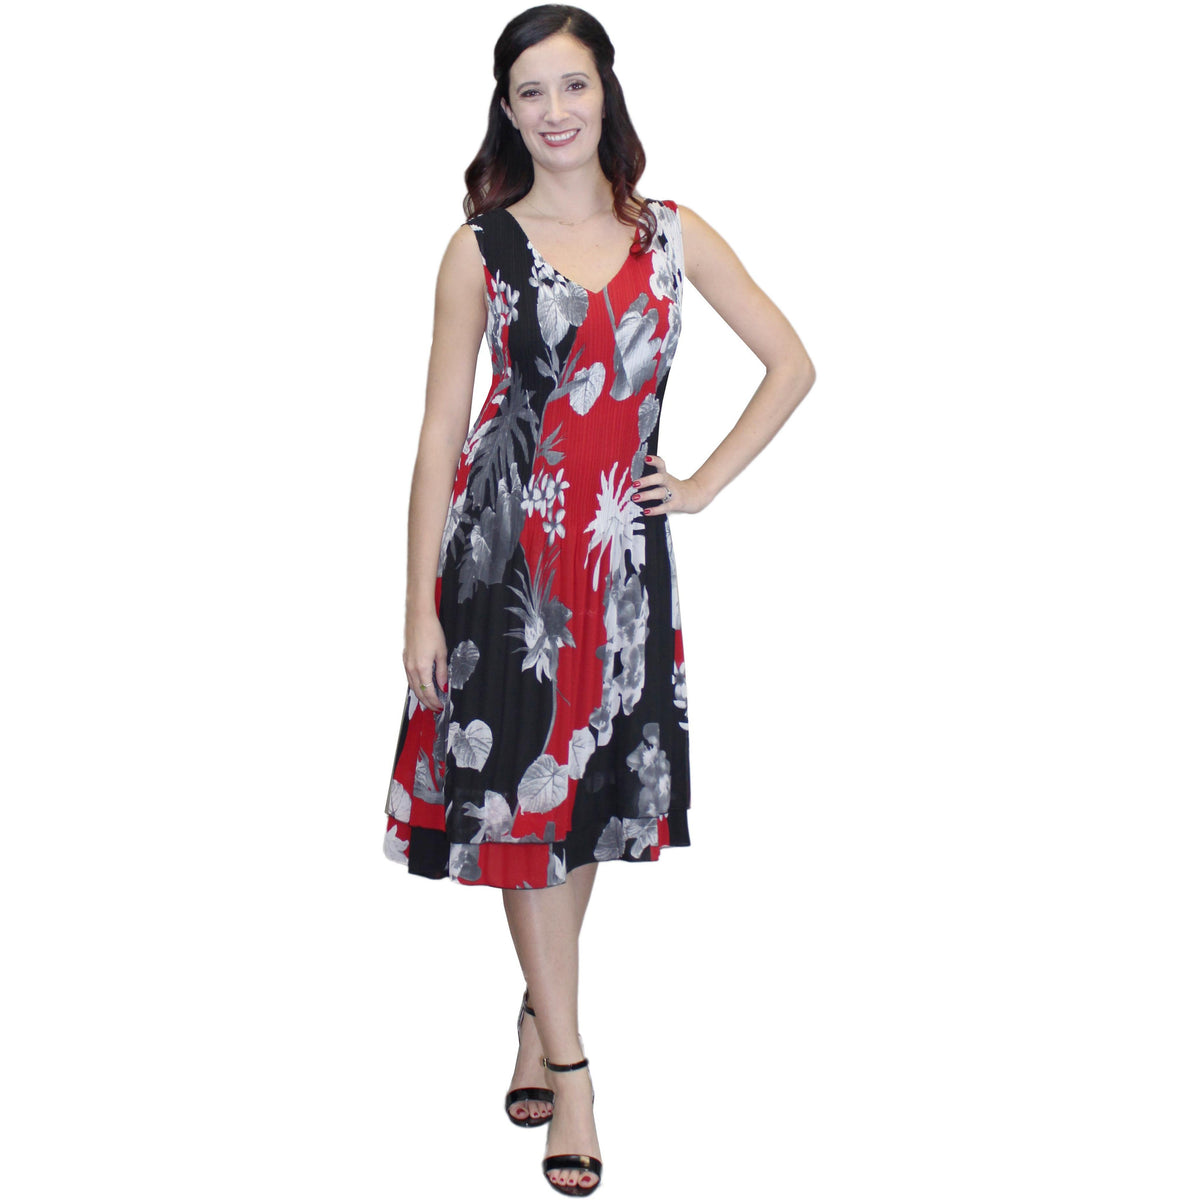 V-Neck Print Crinkle Dress - Red